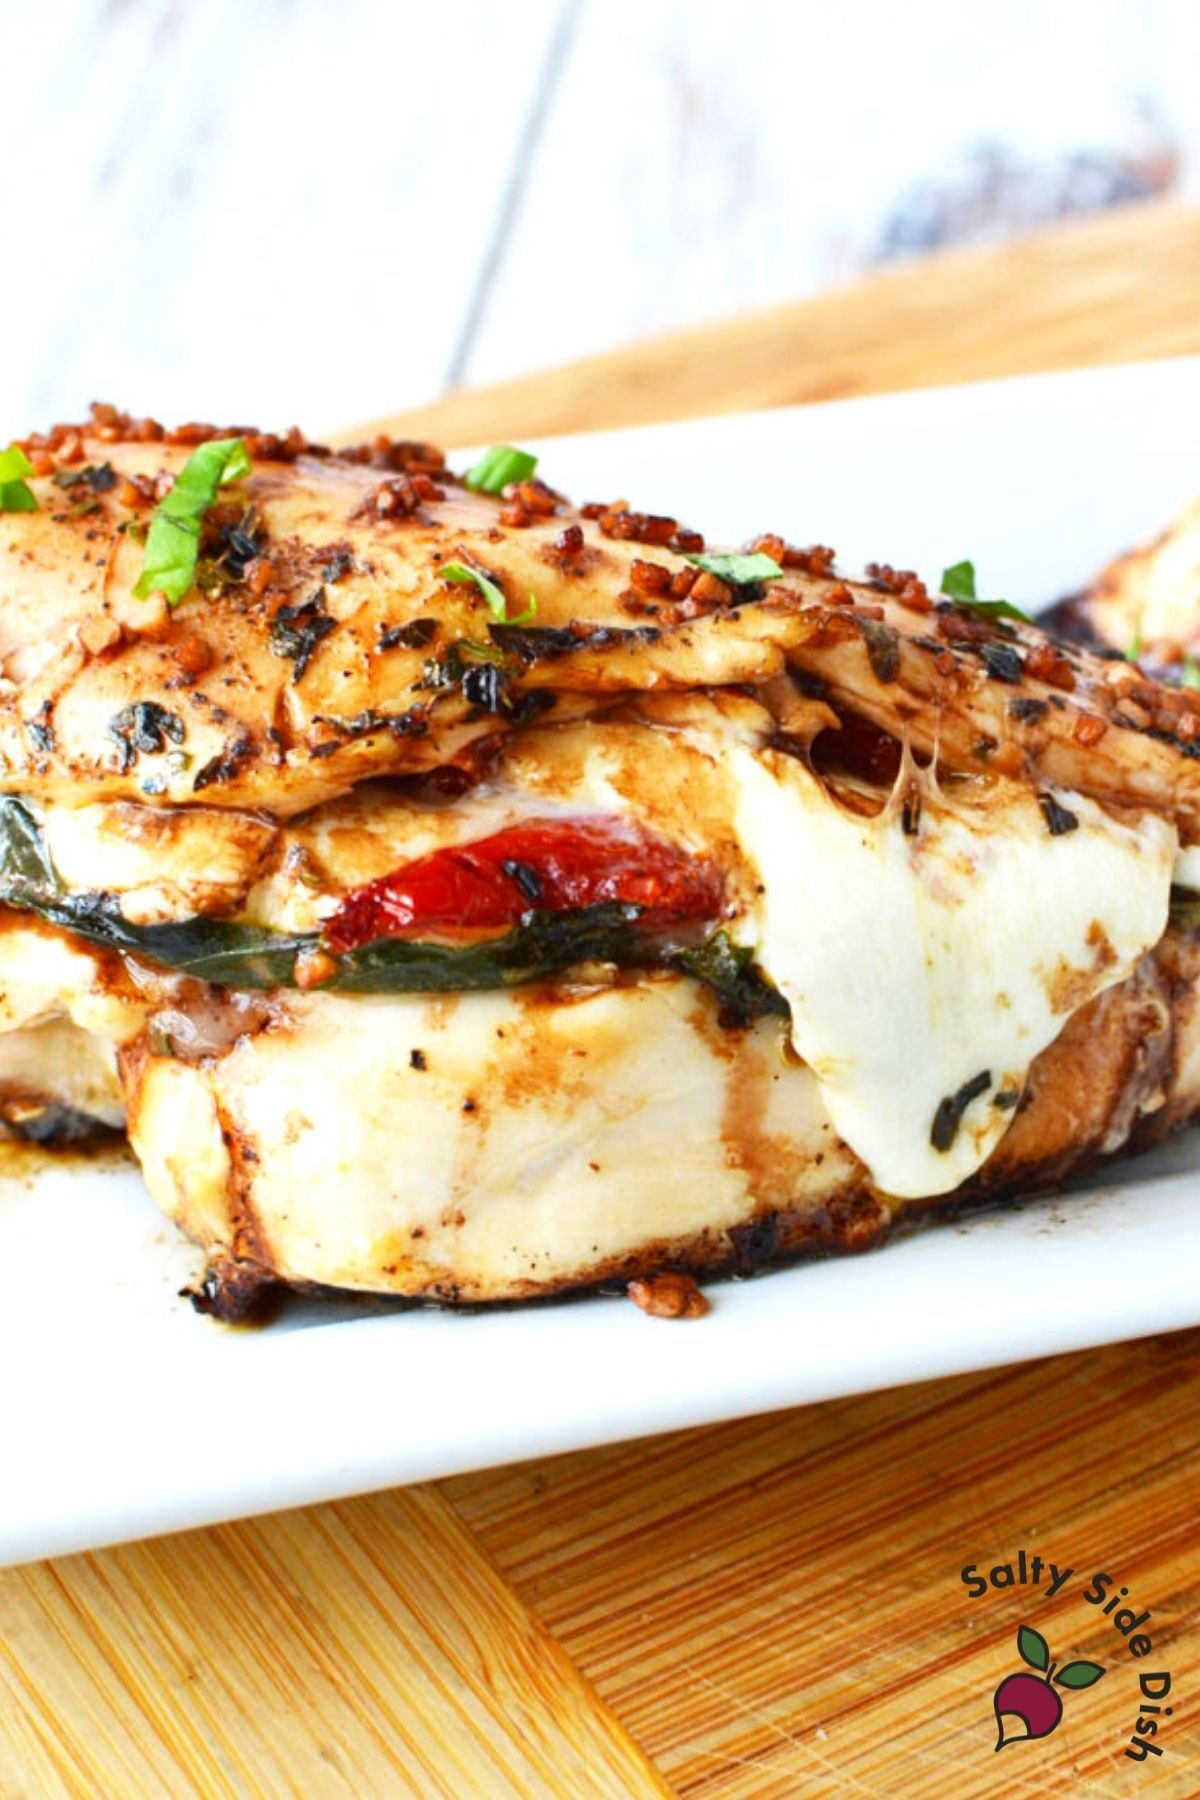 chicken breast with cheese and tomatoes falling out.